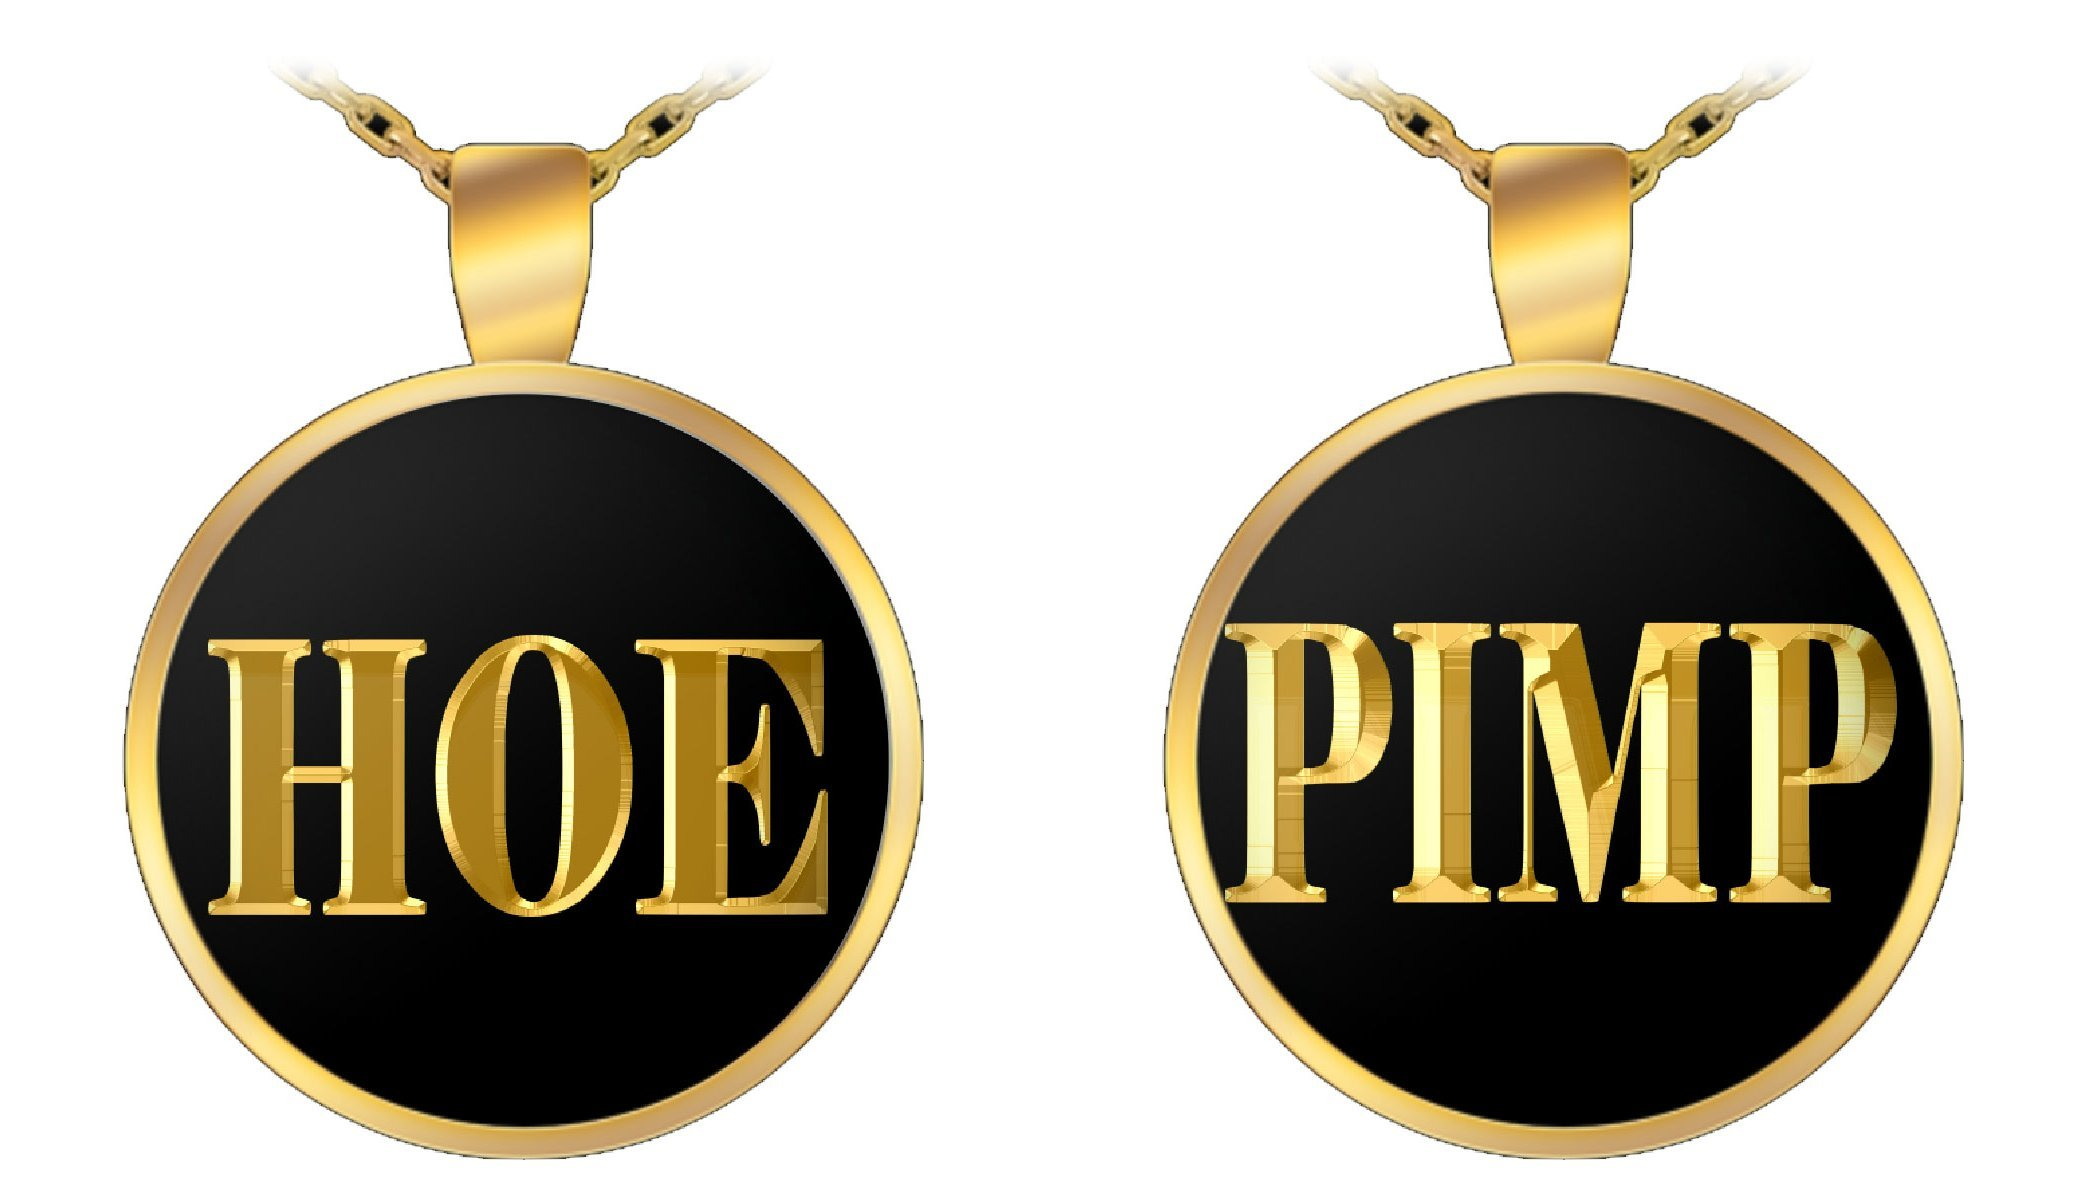 Couples Necklace Pendant Set - Pimp & Hoe – 22' Gold Plated Chain - UV Resistant and Water Resistant - Made in America